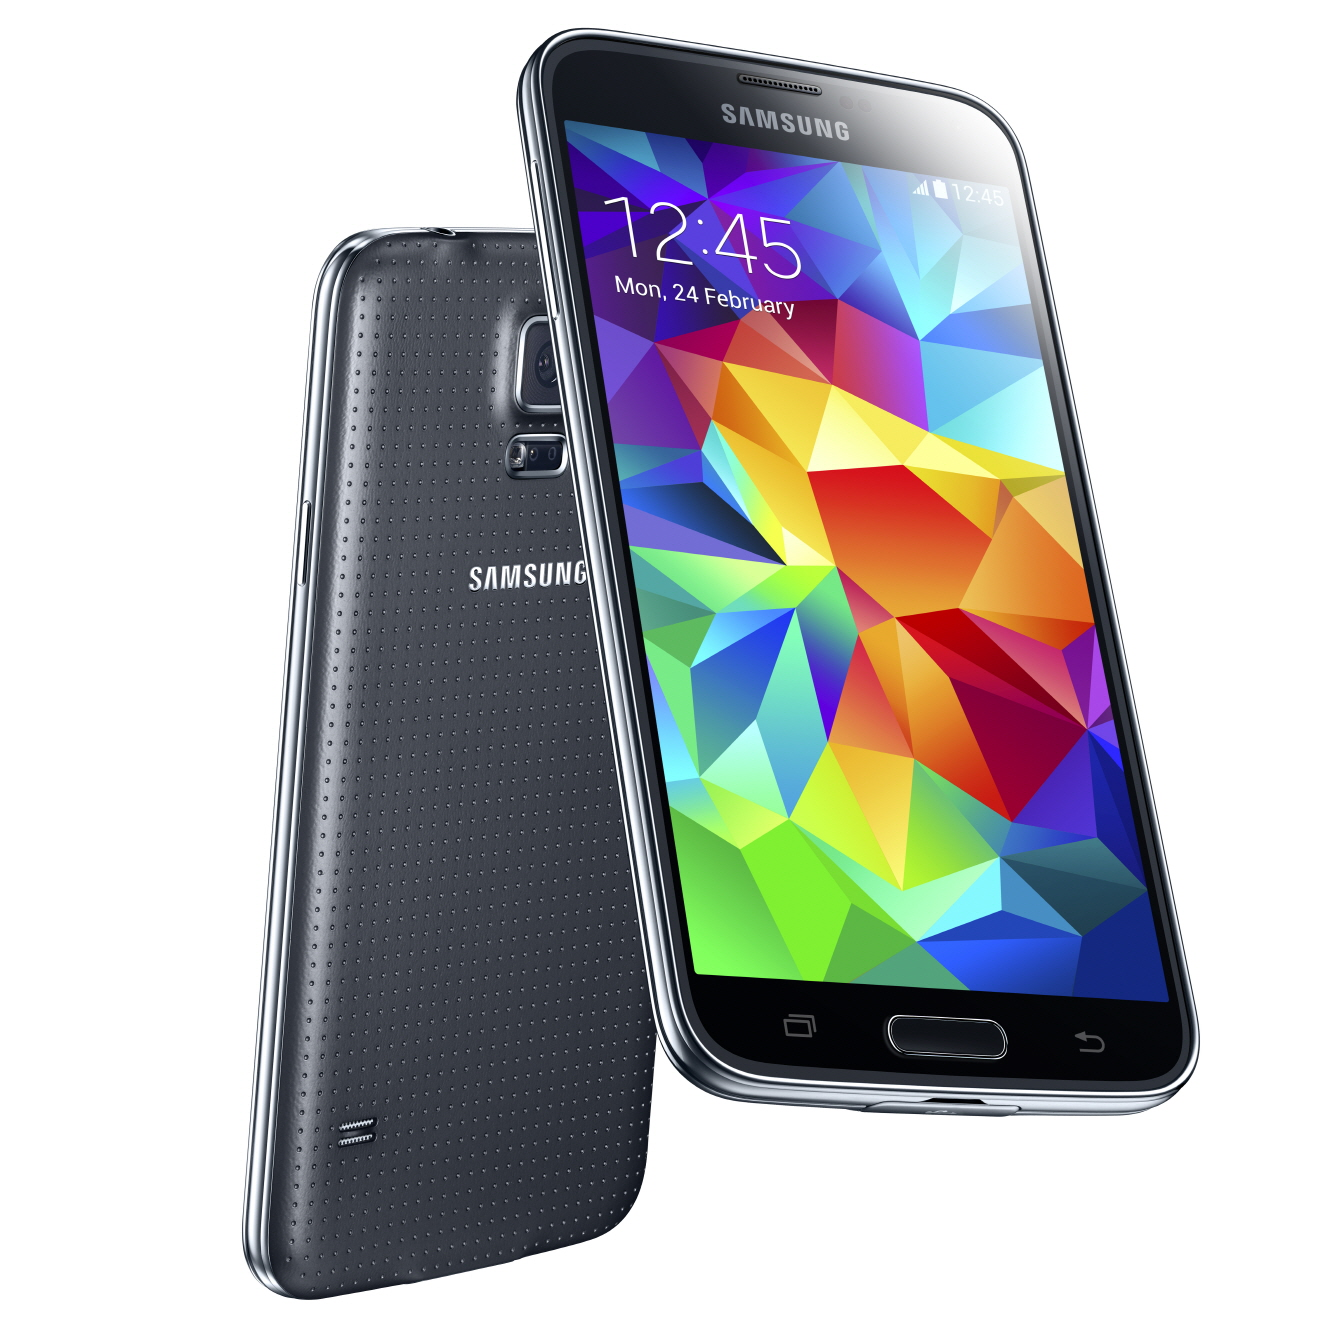 Galaxy S5 Clone Shows up One Day after Real One's Debut | Be